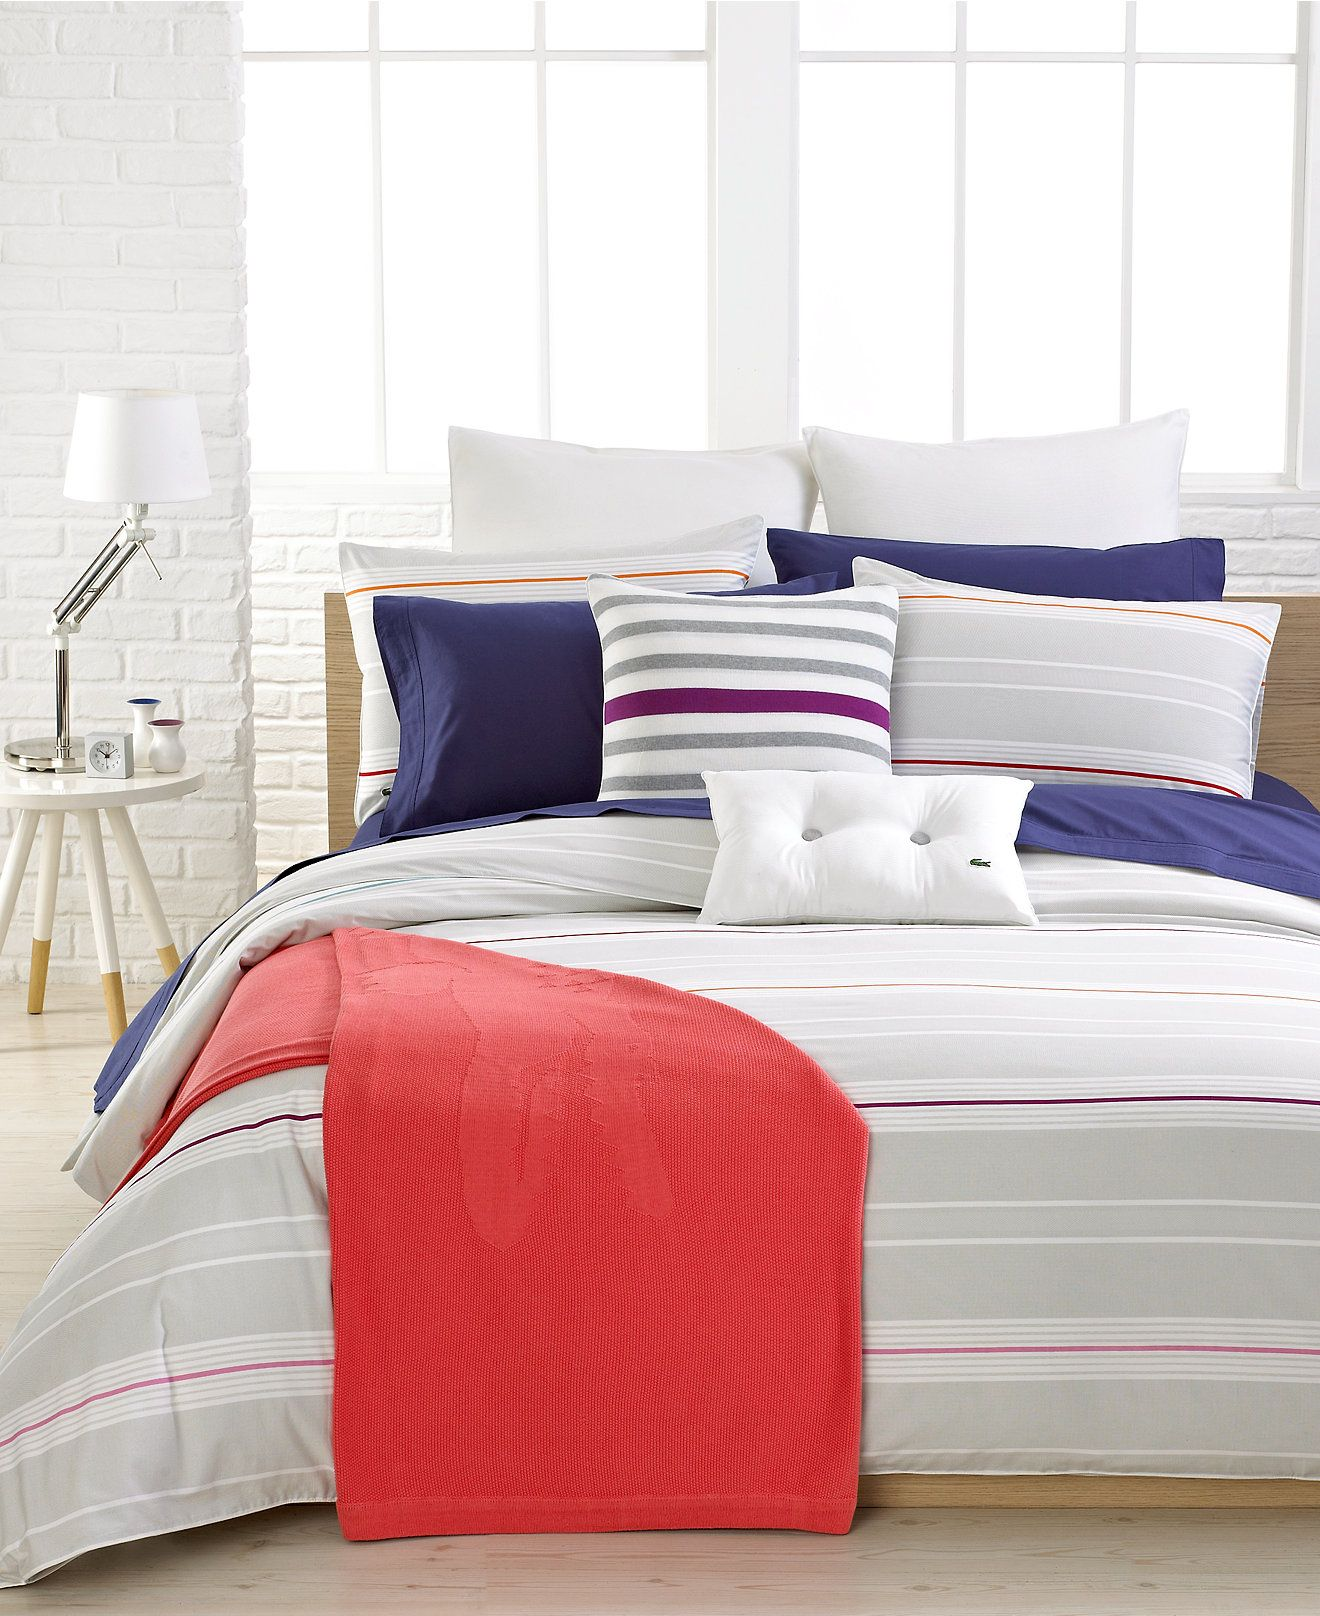 CLOSEOUT! Lacoste Fermat Comforter and Duvet Cover Sets